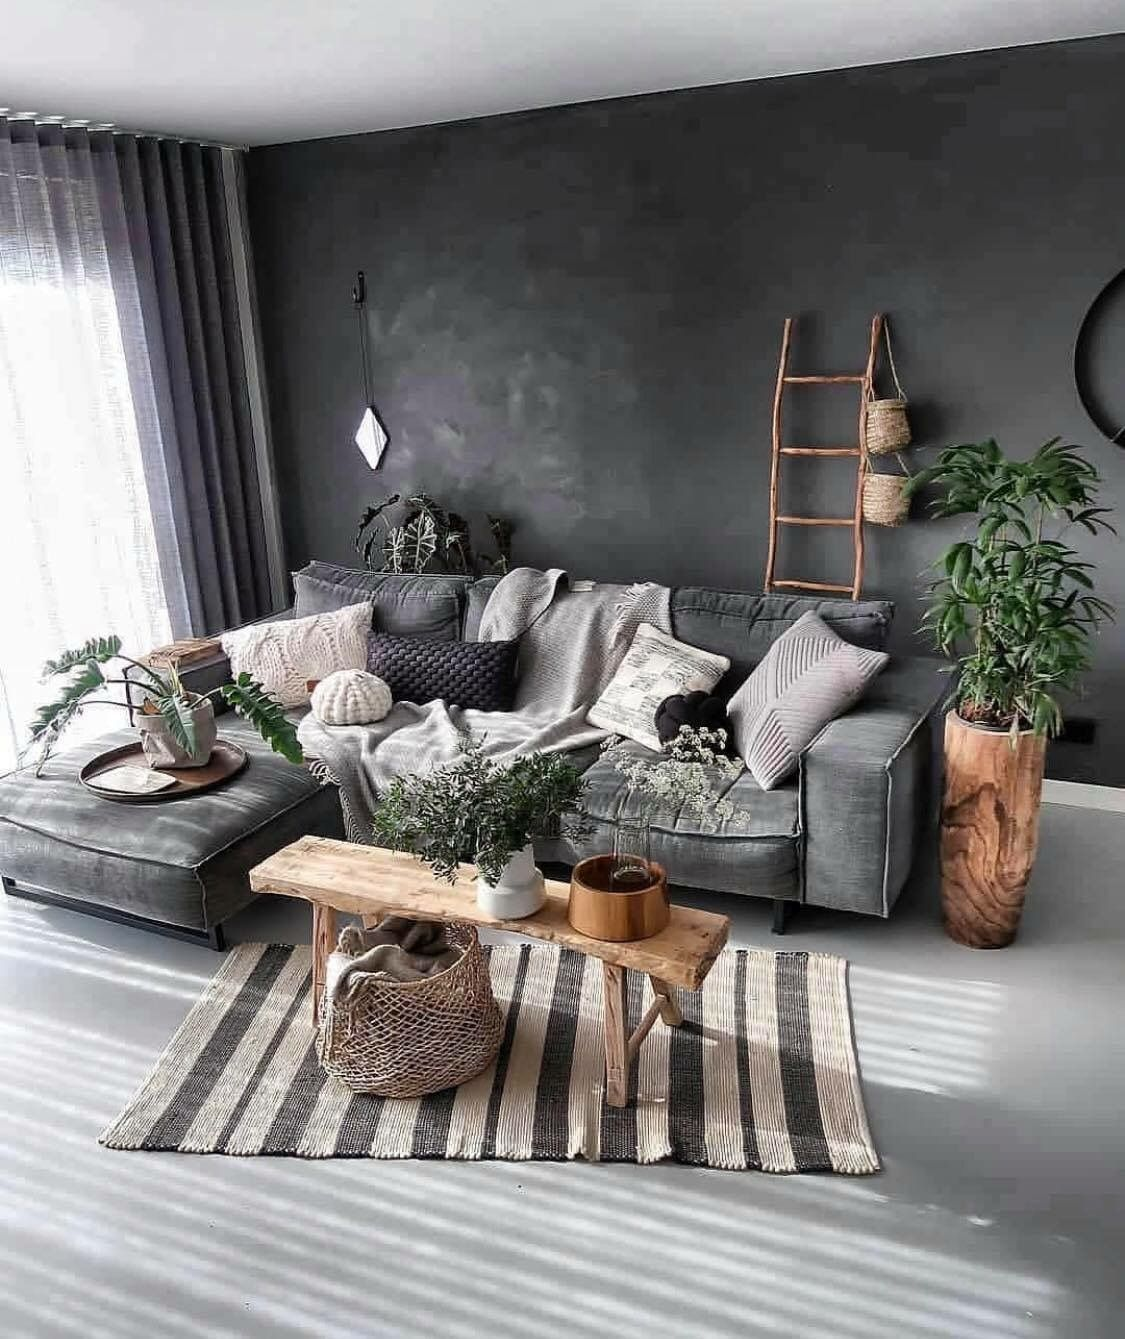 30+ Elegant Dark Living Room Ideas (Dramatic Paint Inspiration) images